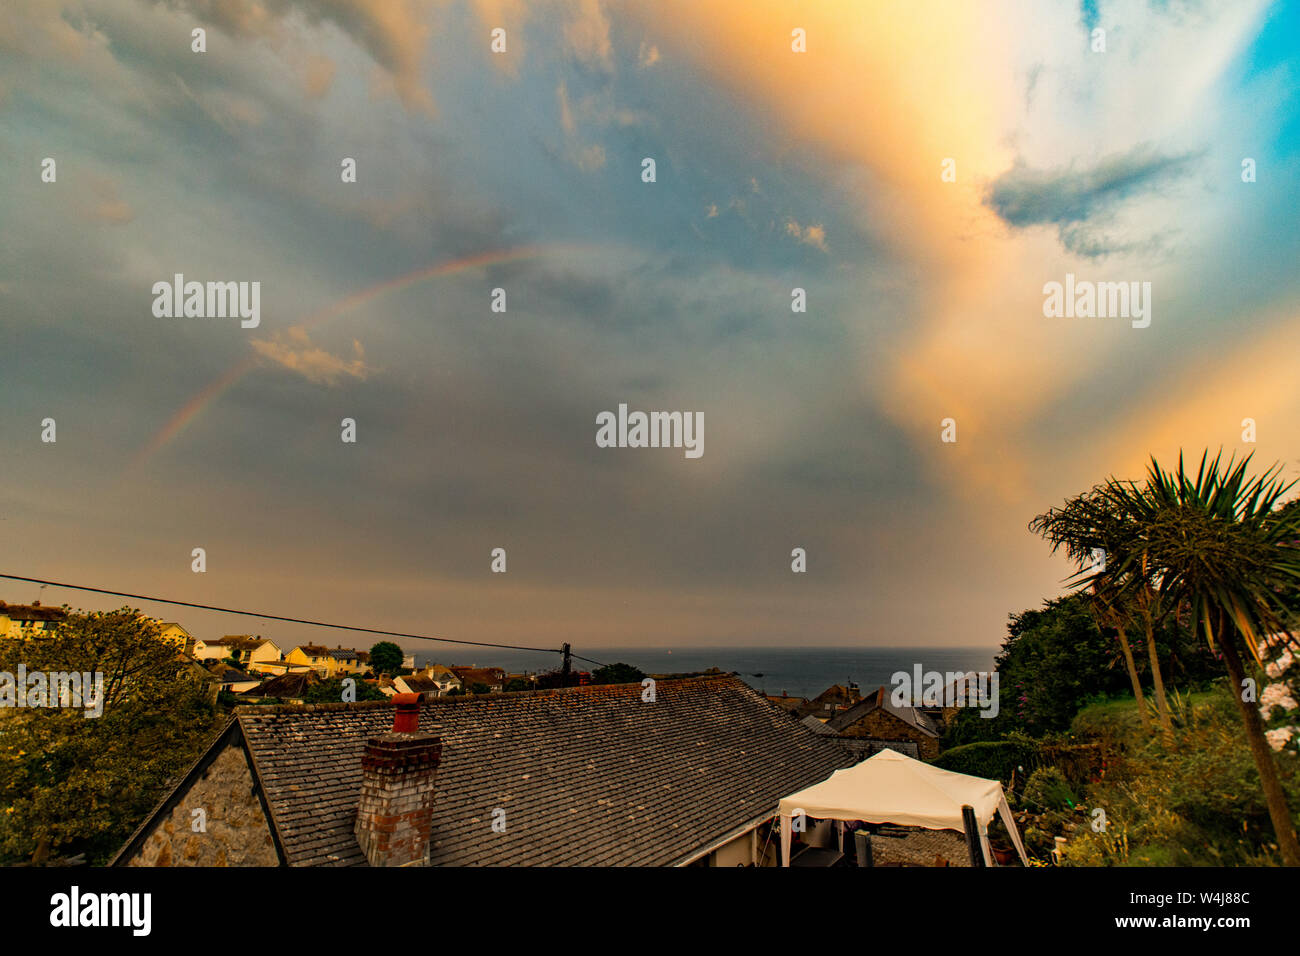 Mousehole, Cornwall, UK. 23rd July 2019. UK Weather.  Just ahead of the forecast thundery showers this rainbow made a late appearance over the town of Mousehole.  Credit Simon Maycock / Alamy Live News. Stock Photo